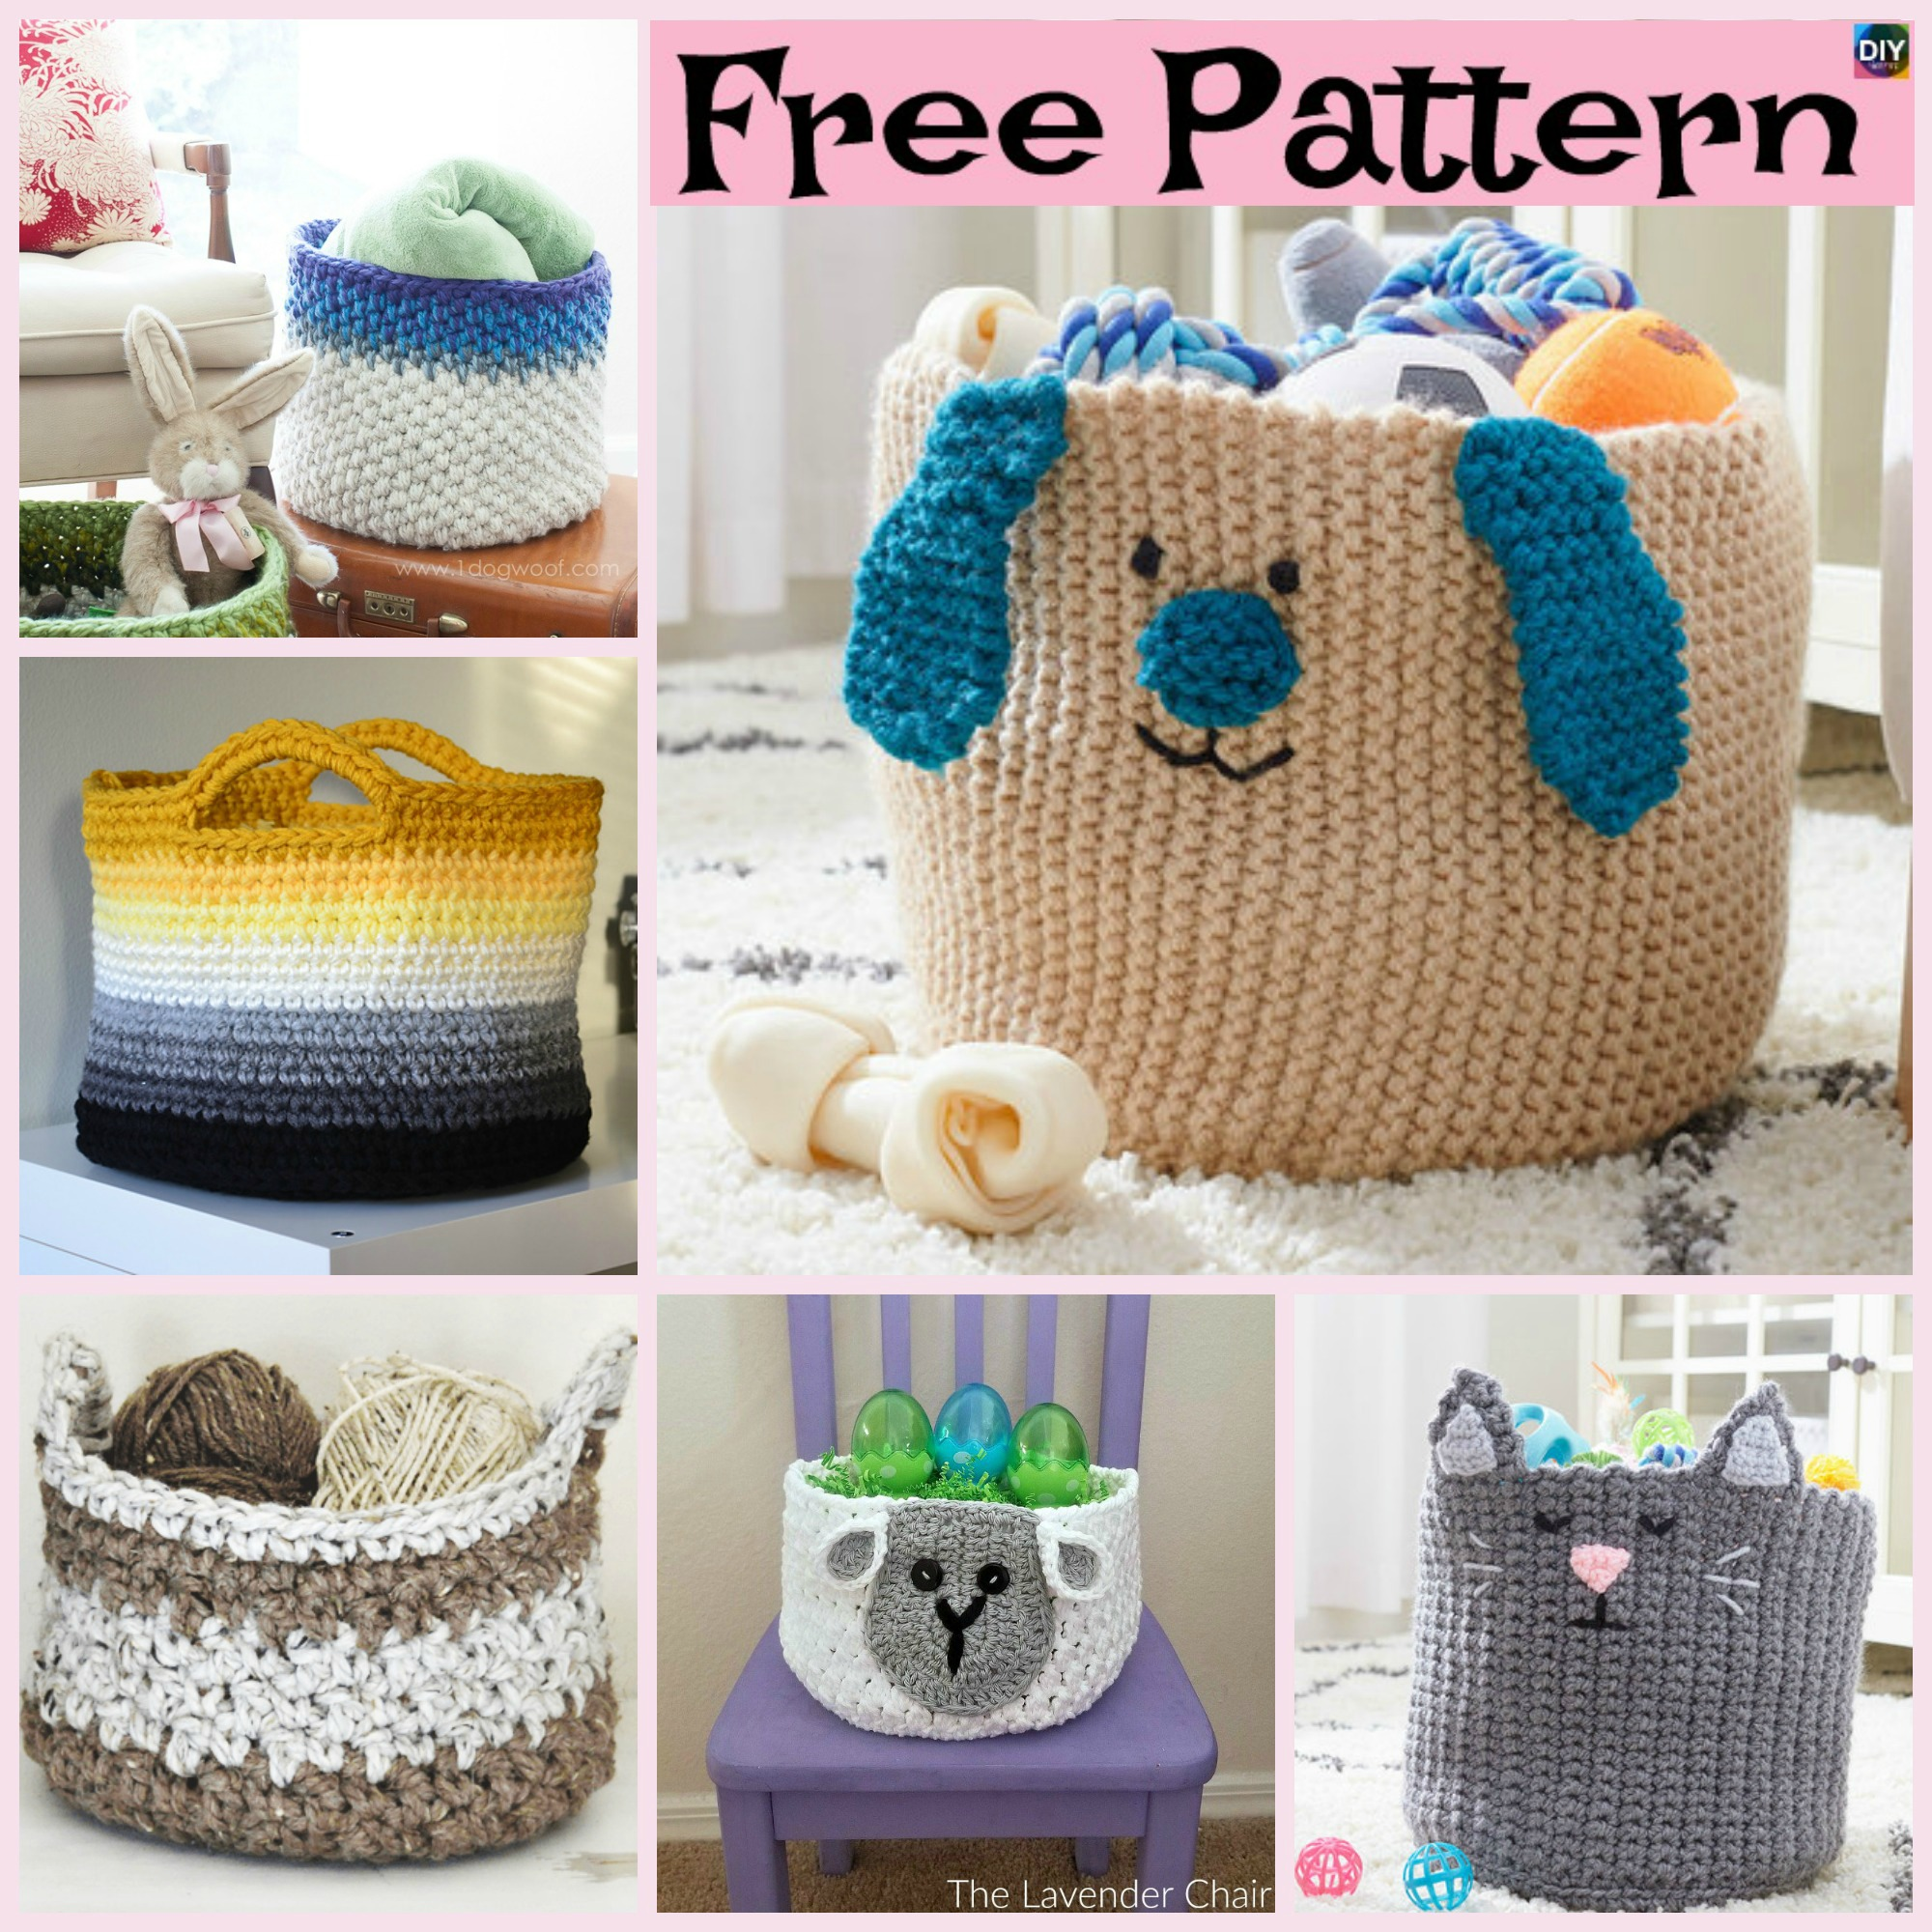 diy4ever- 8 Most Adorable Crochet Basket Free Patterns